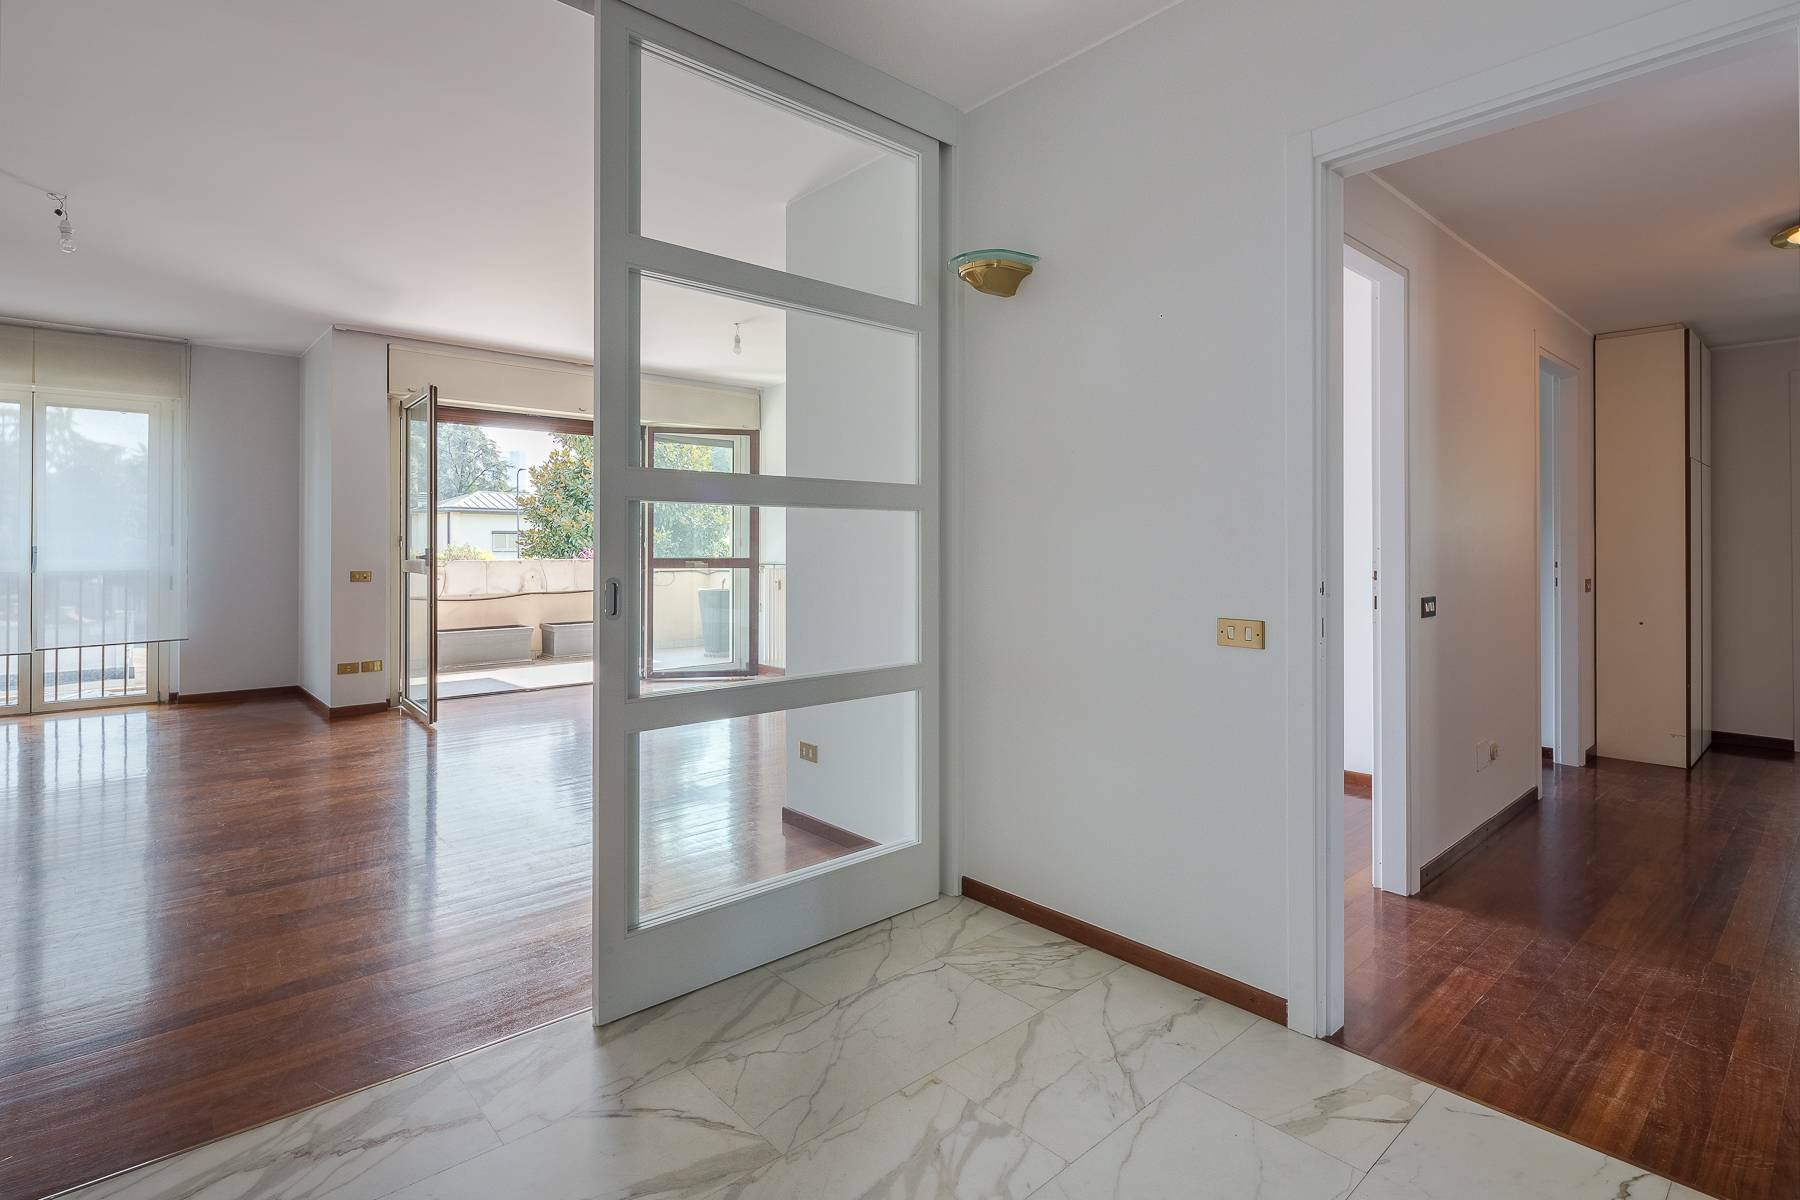 Apartment in Milan, Lombardy, Italy 1